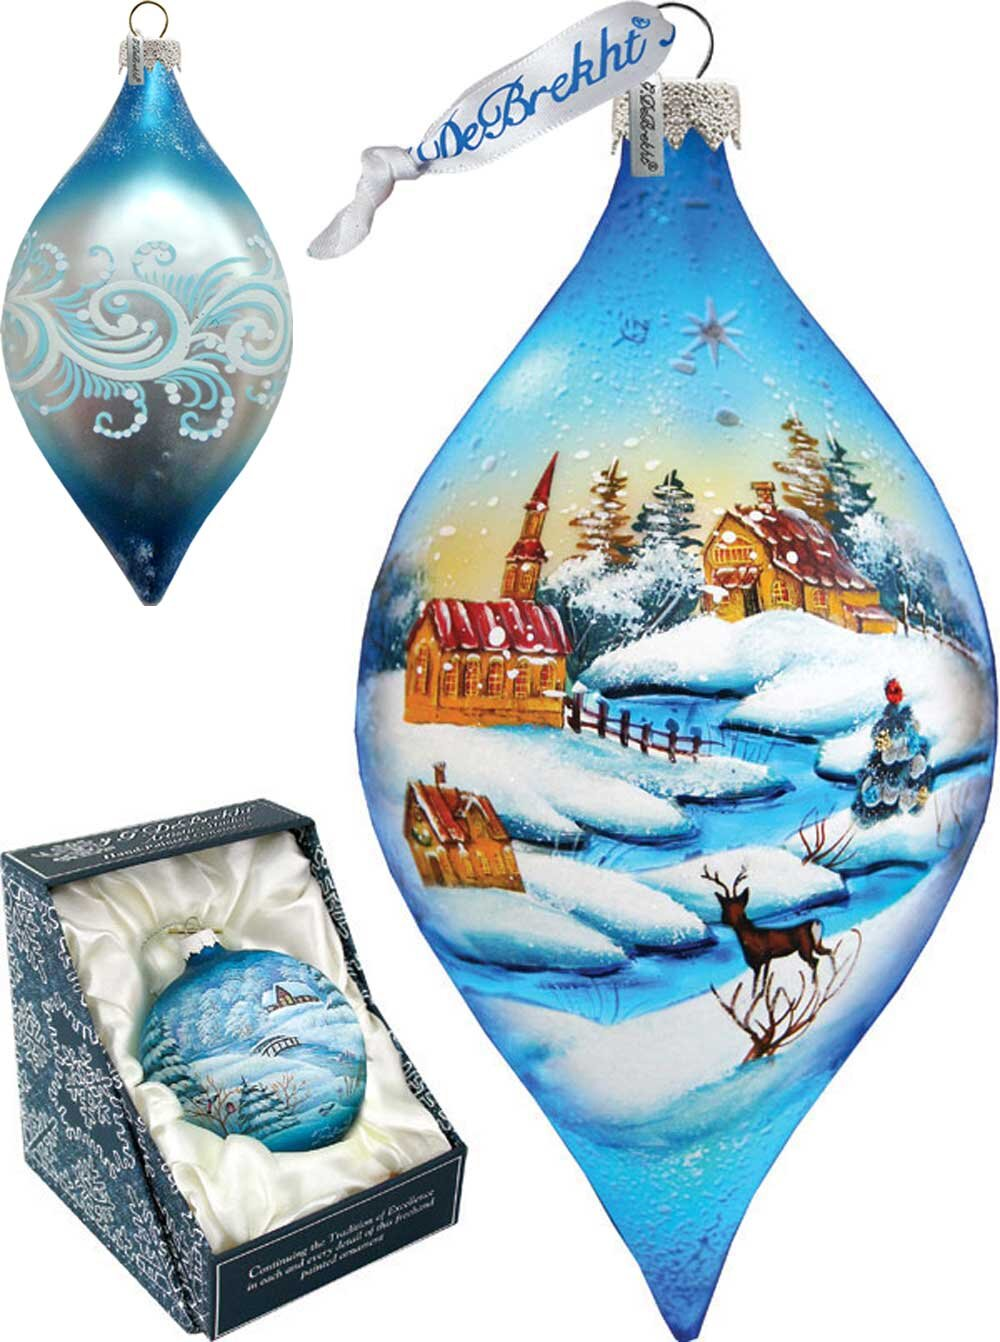 Blue Lighted Christmas Ornaments You Ll Love In 2021 Wayfair